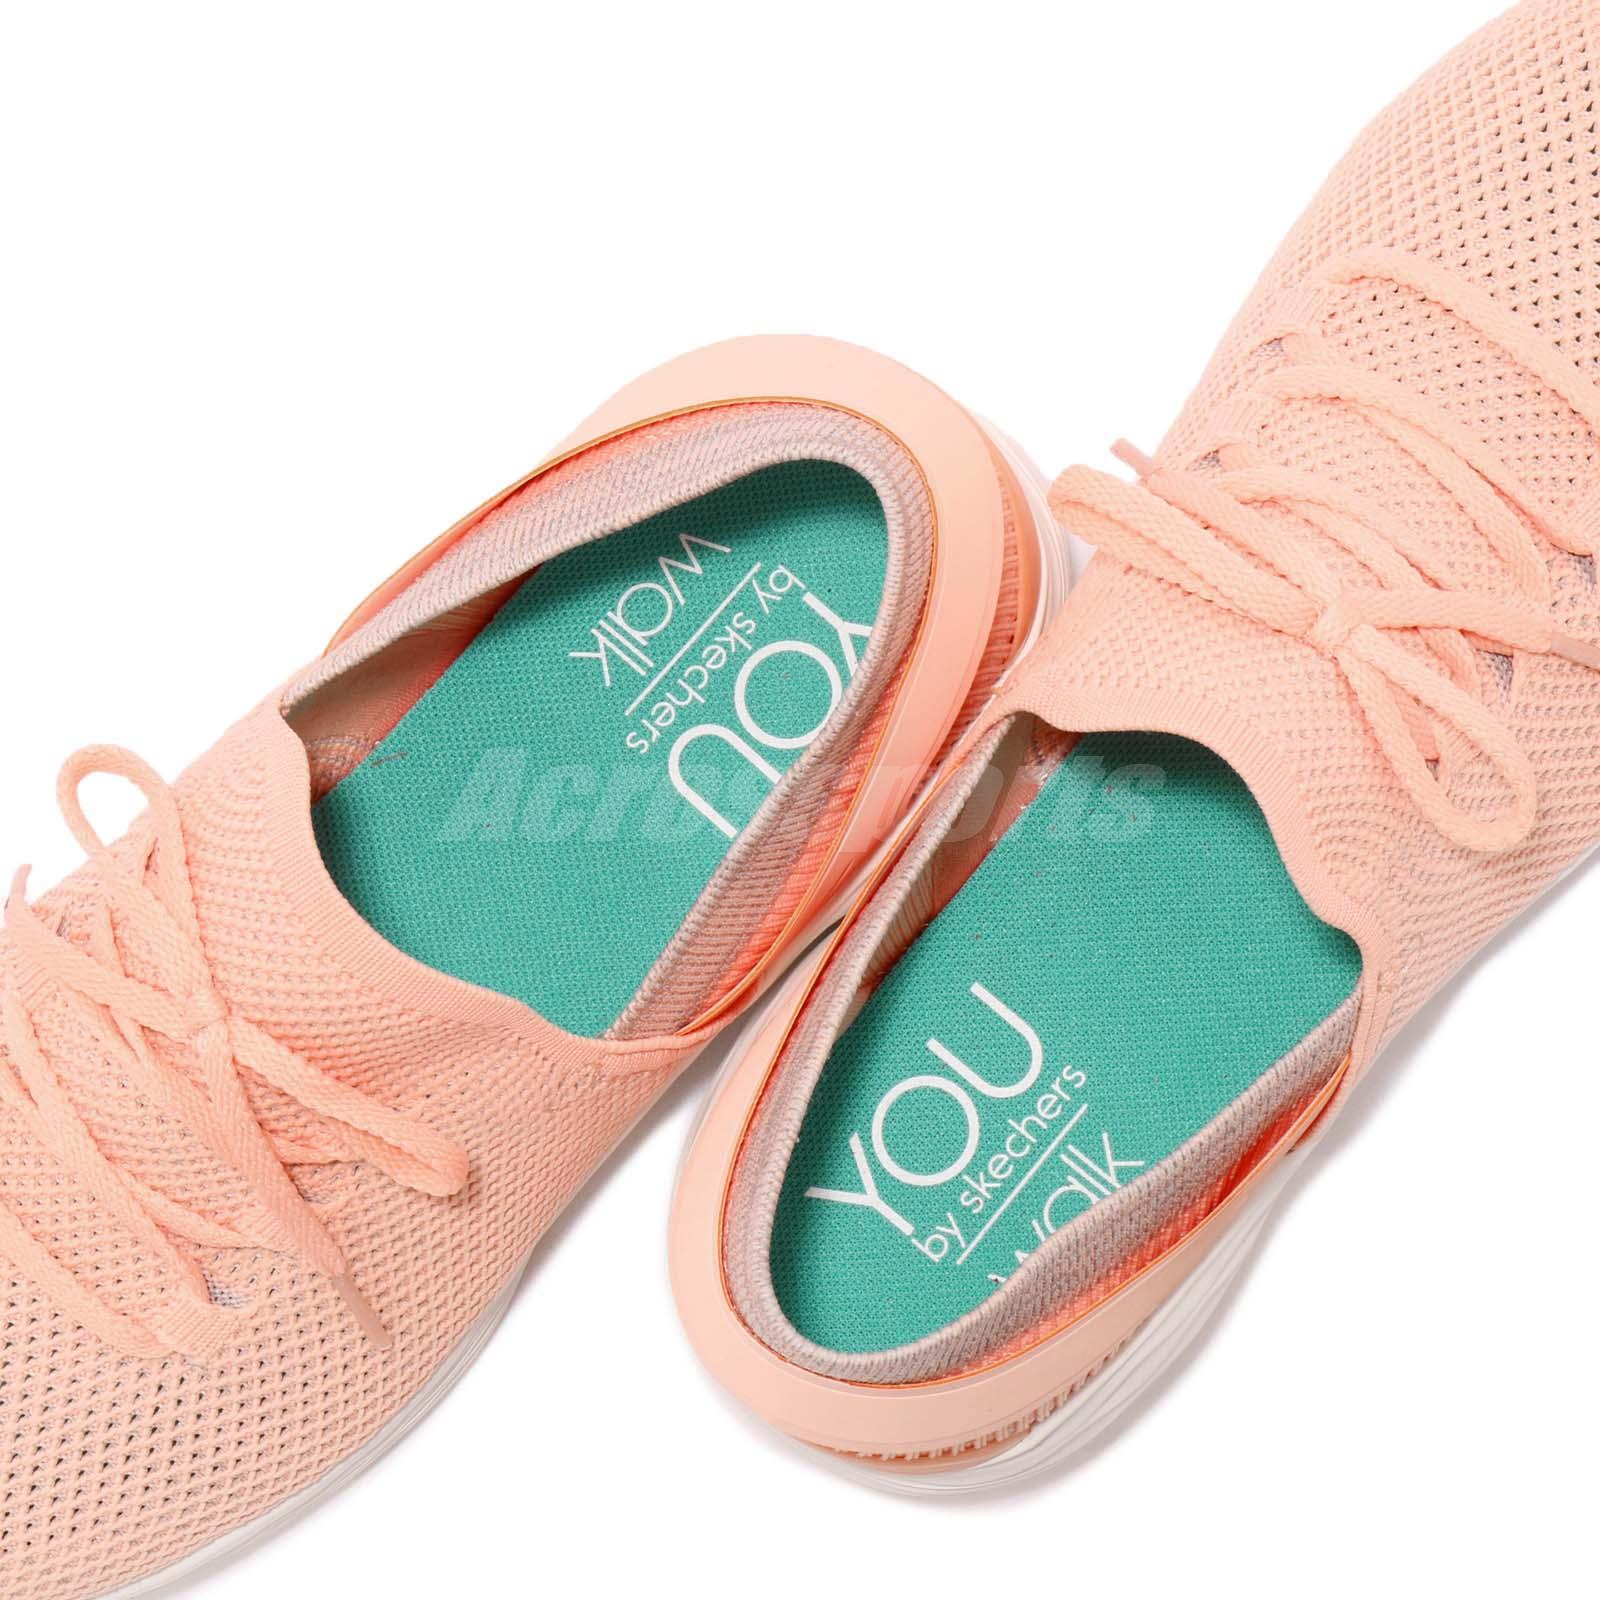 592a9db10296 Skechers You-Spirit Peach Pink White Women Casual Walking Shoe ...